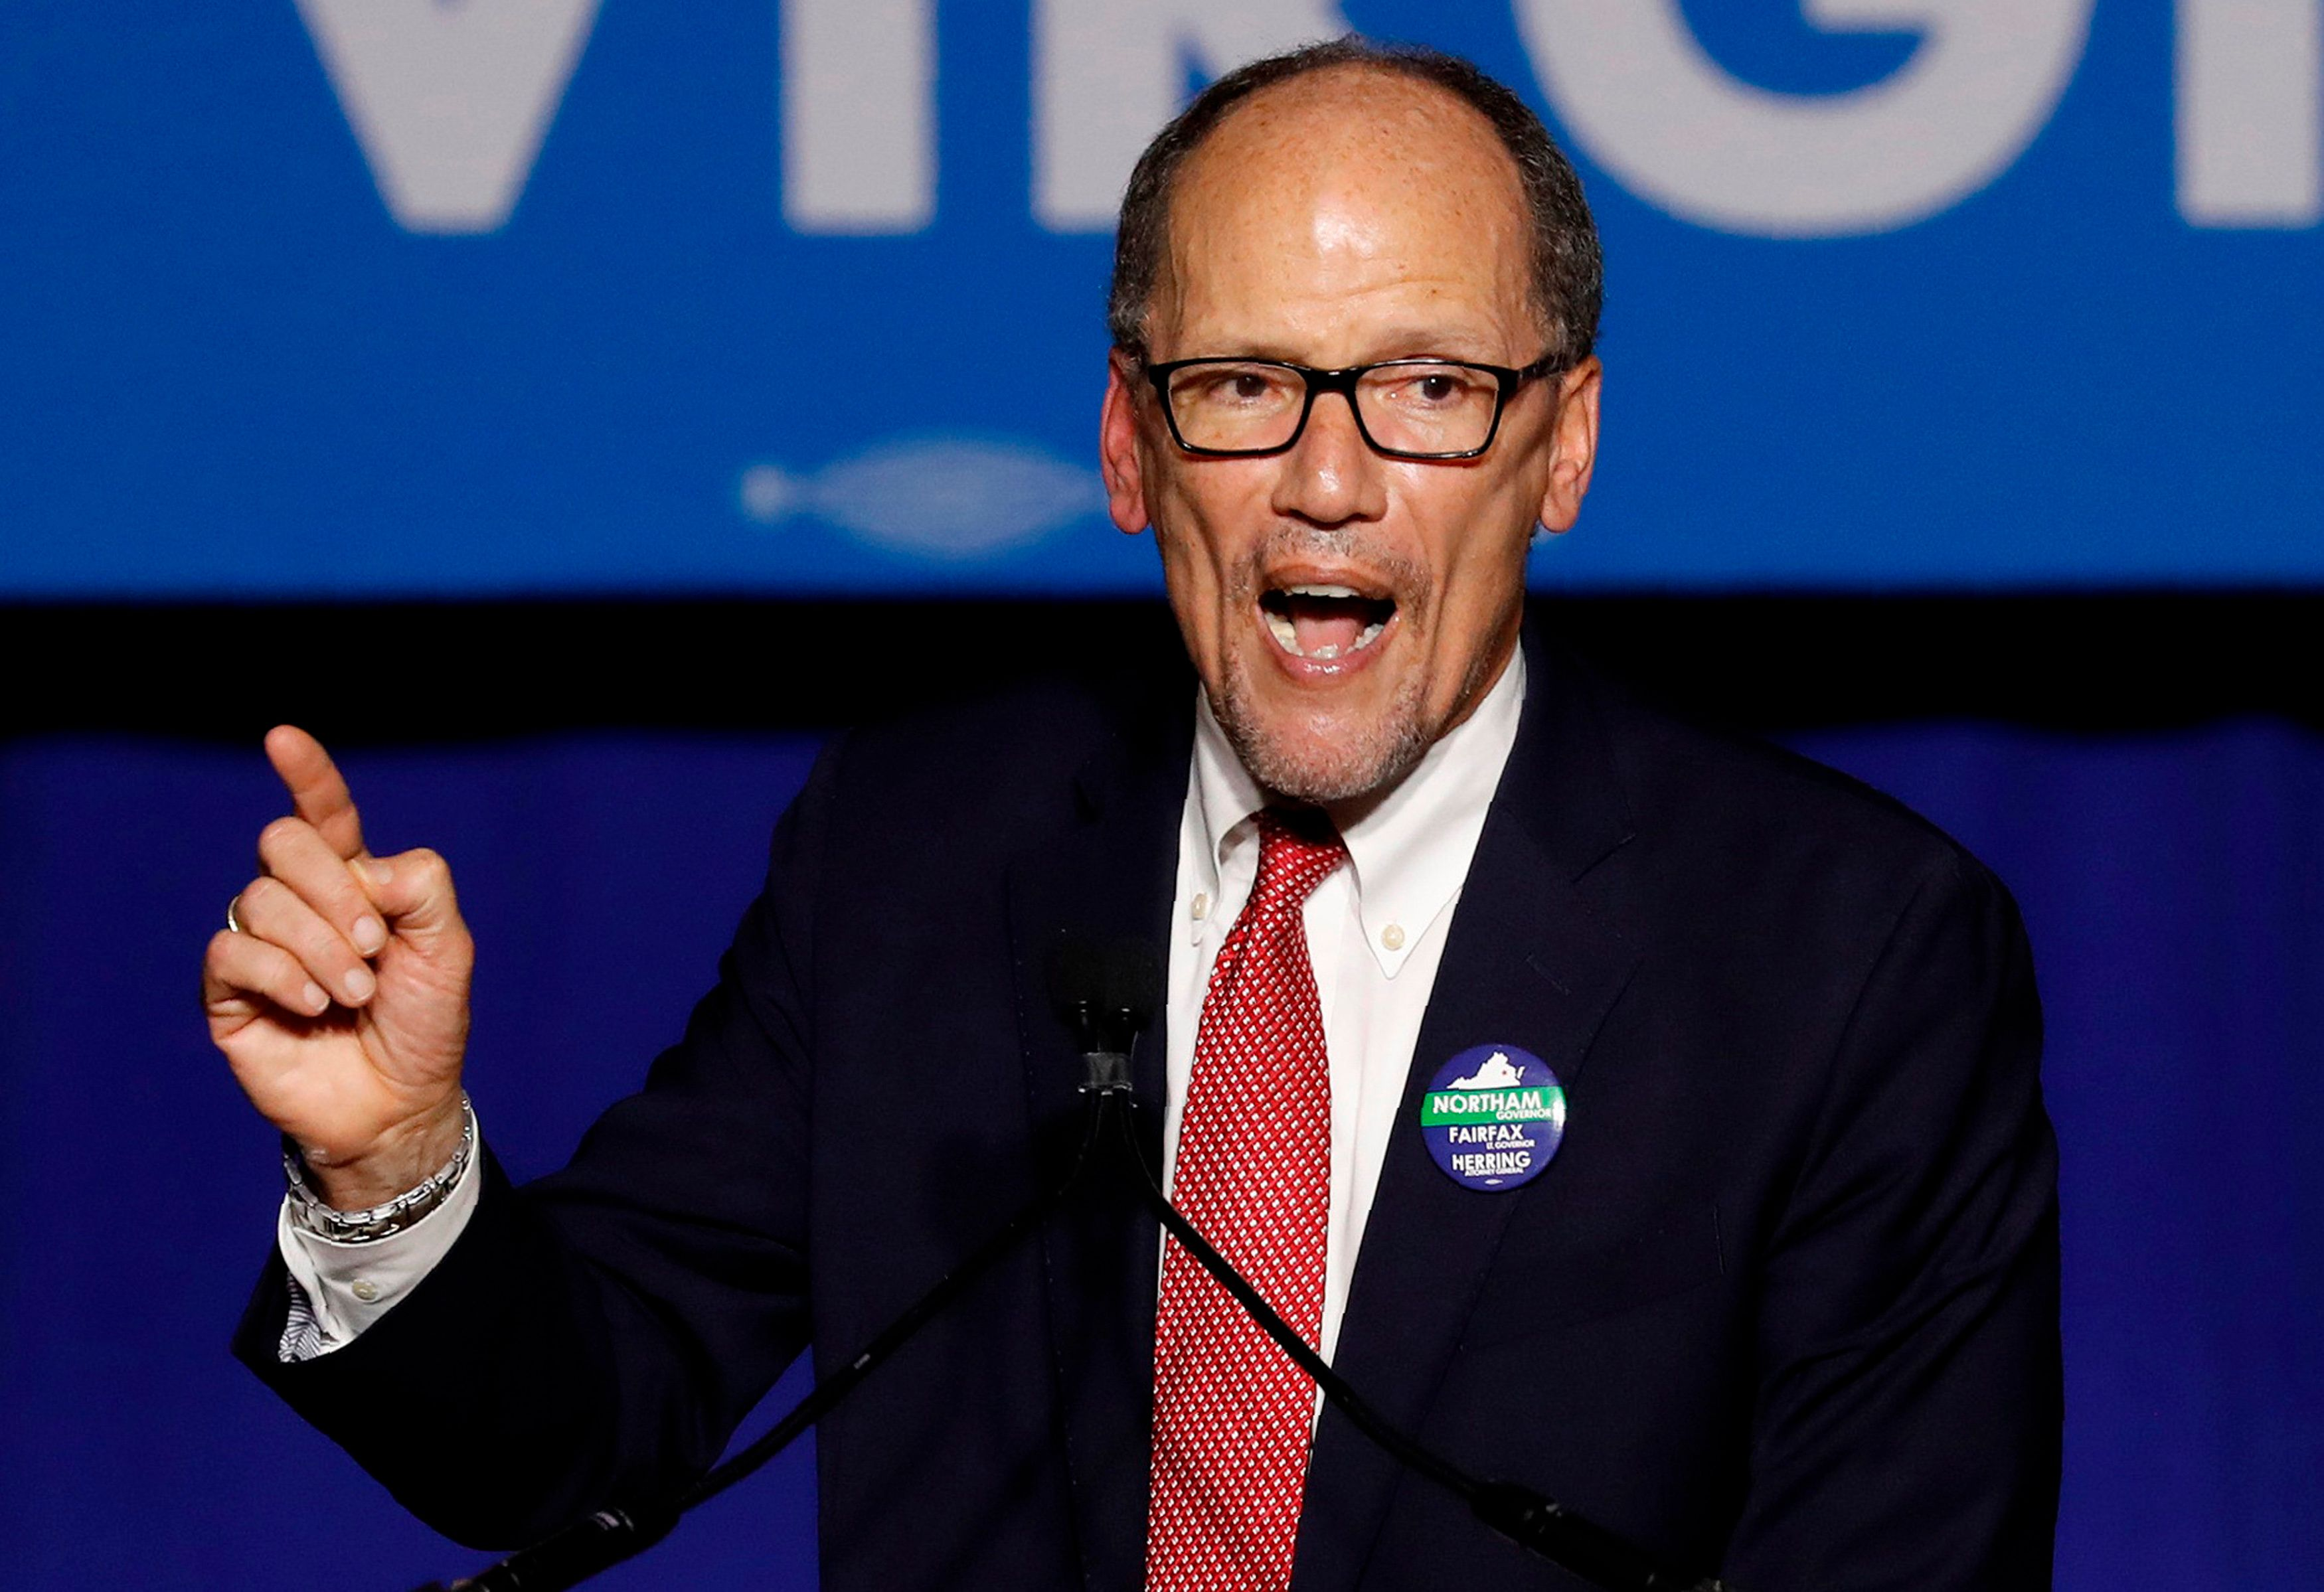 Democratic National Committee Chairman Tom Perez raised eyebrows with a public endorsement ofNew York Gov. Andrew Cuomo